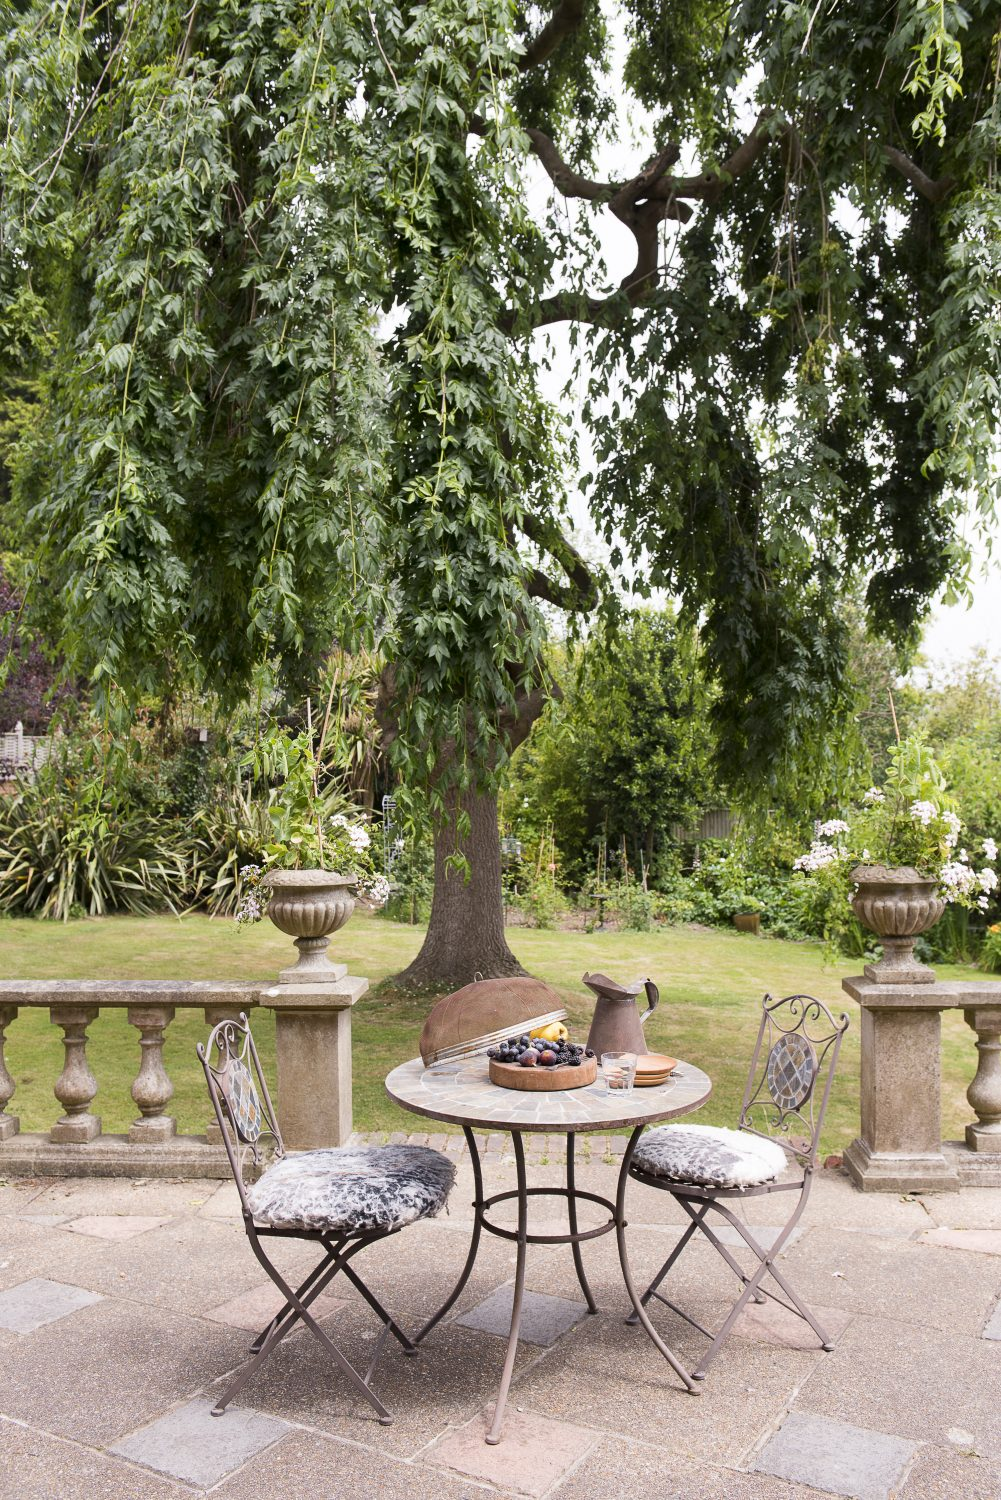 The terrace overlooks the garden in which the company have created a series of outdoor rooms used for rehearsals